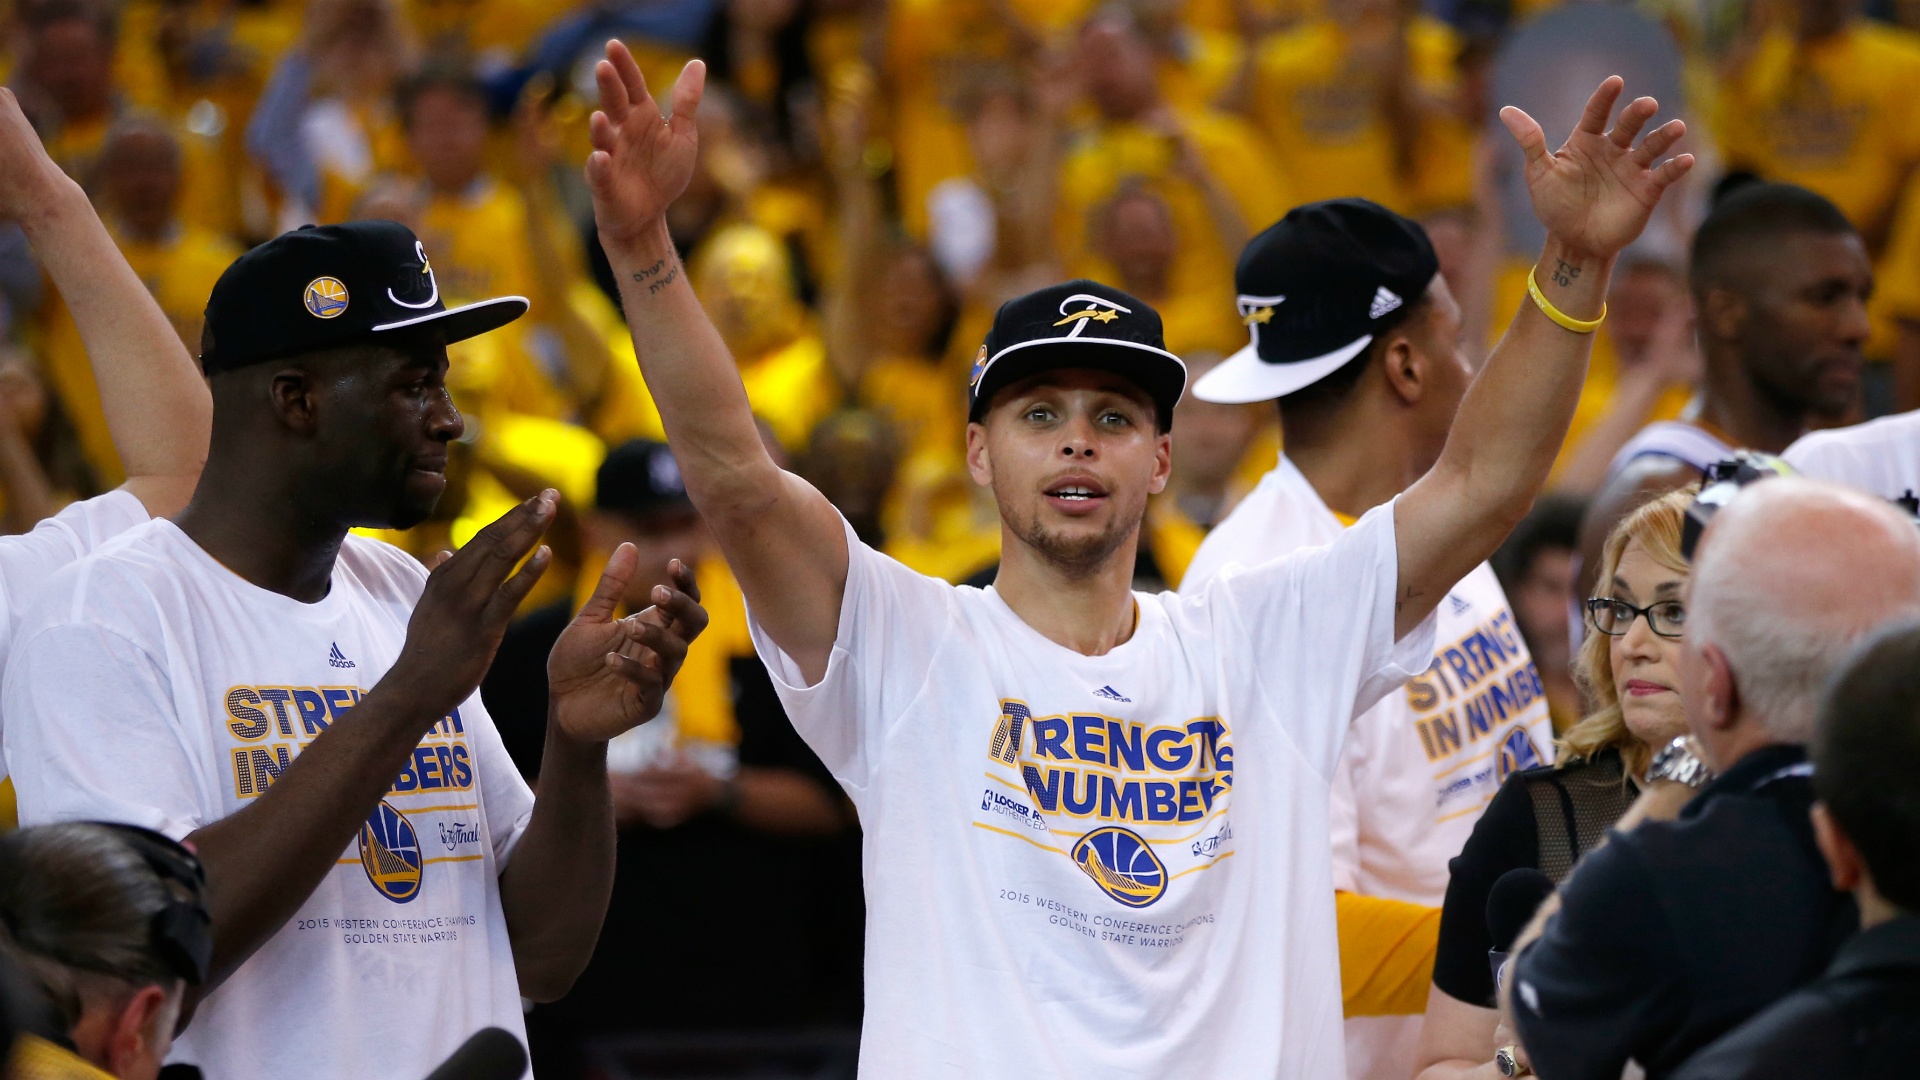 Stephen Curry's family grounds him even as 'it's surreal' for them